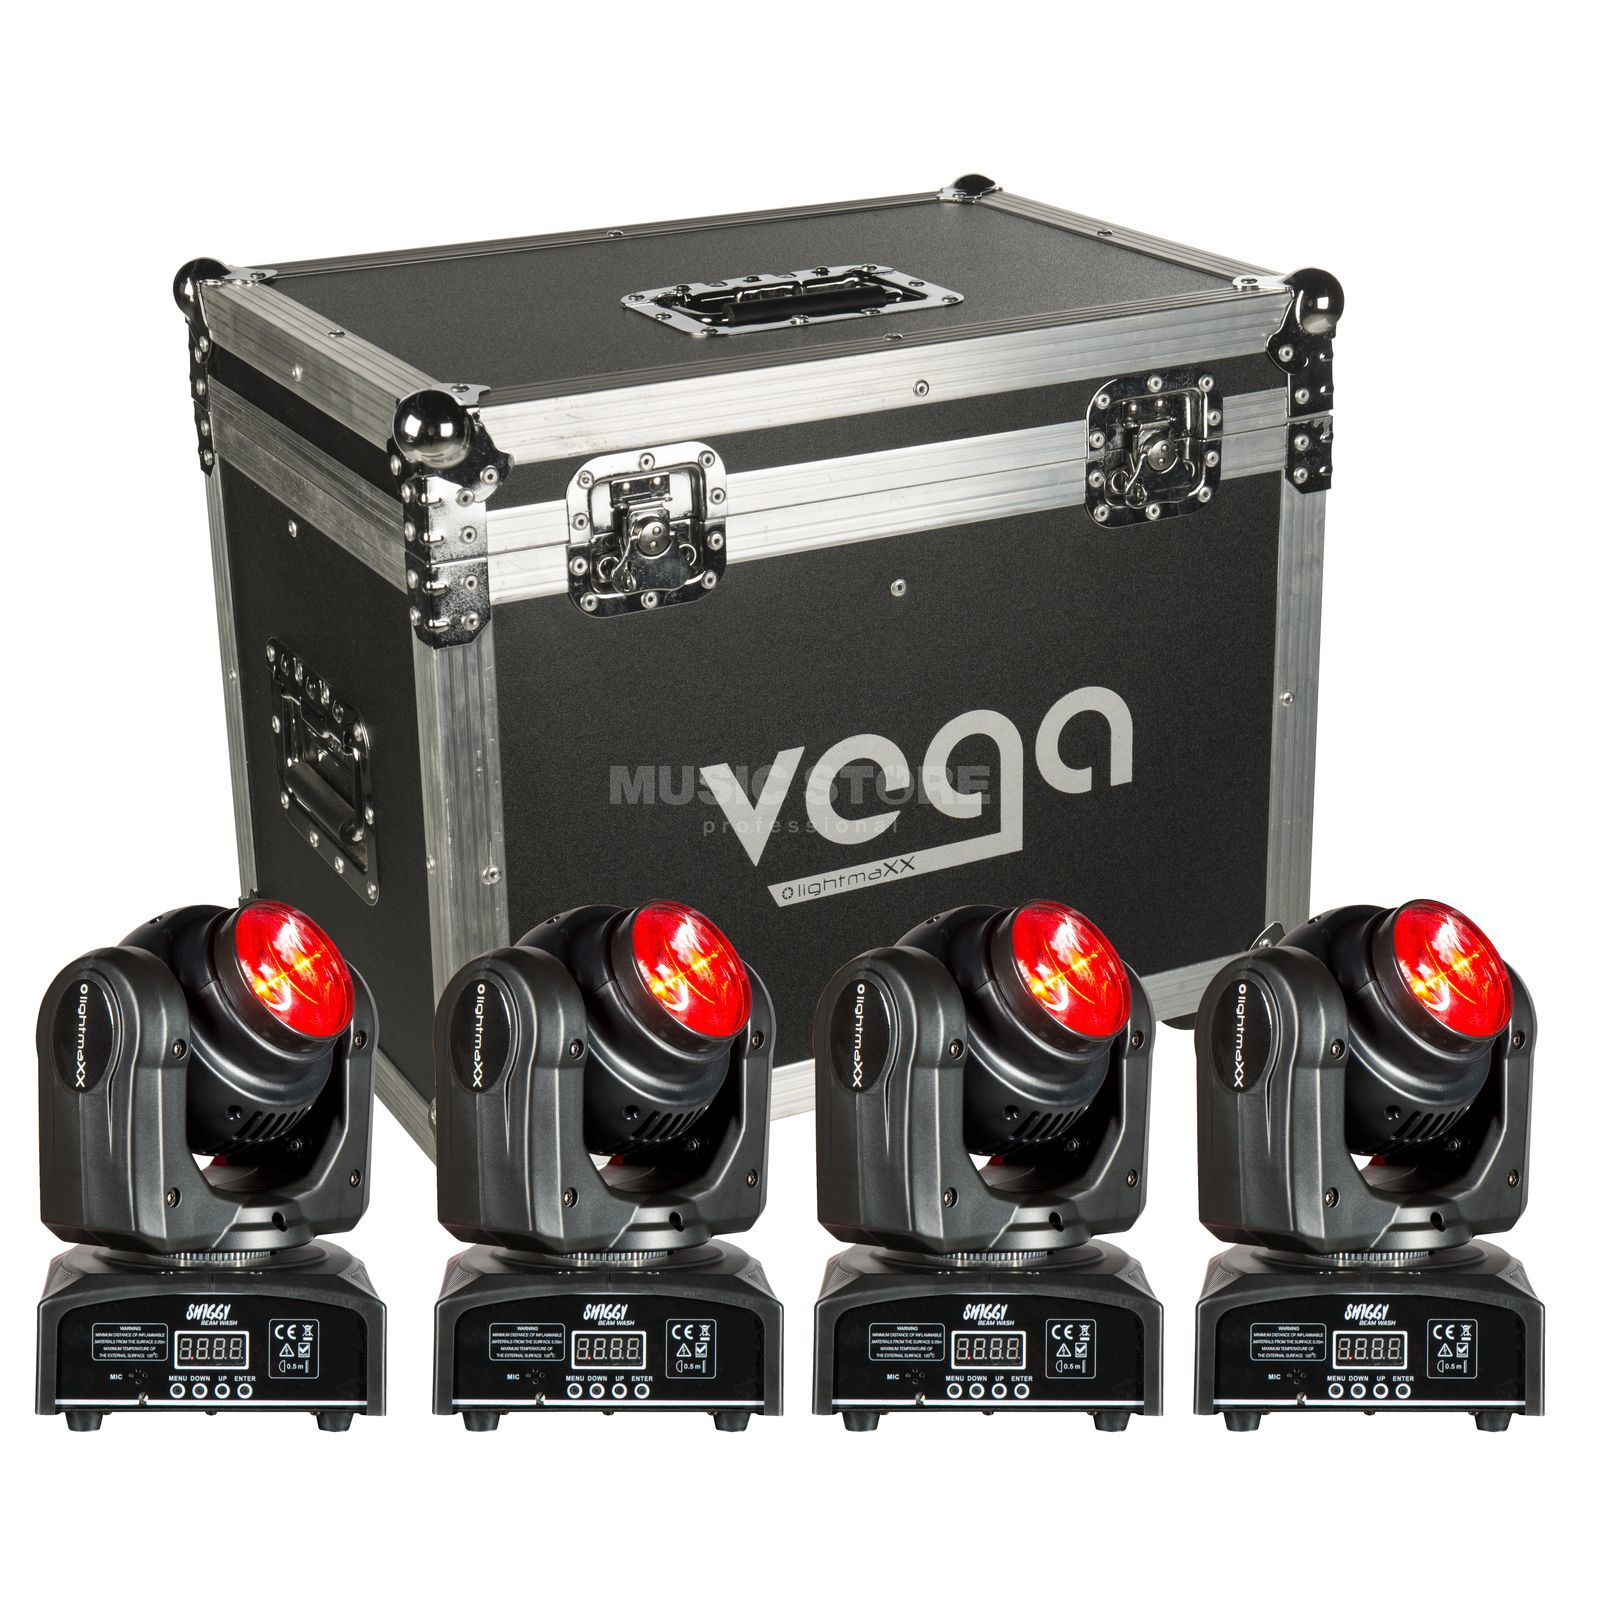 LightmaXX Vega Shiggy Beam Tour - Set Product Image